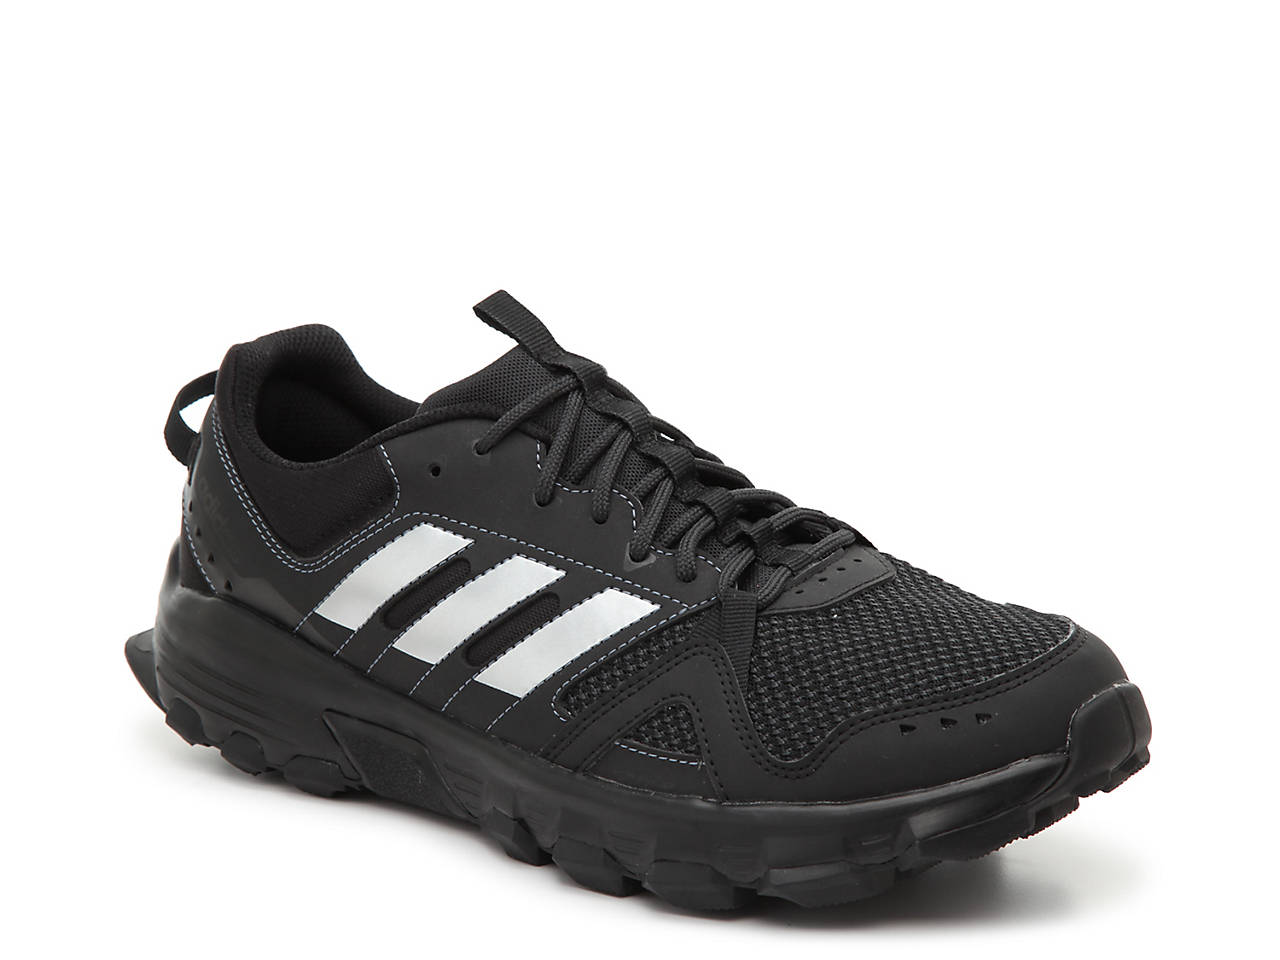 a2c637753 adidas Rockadia Trail Running Shoe - Men s Men s Shoes